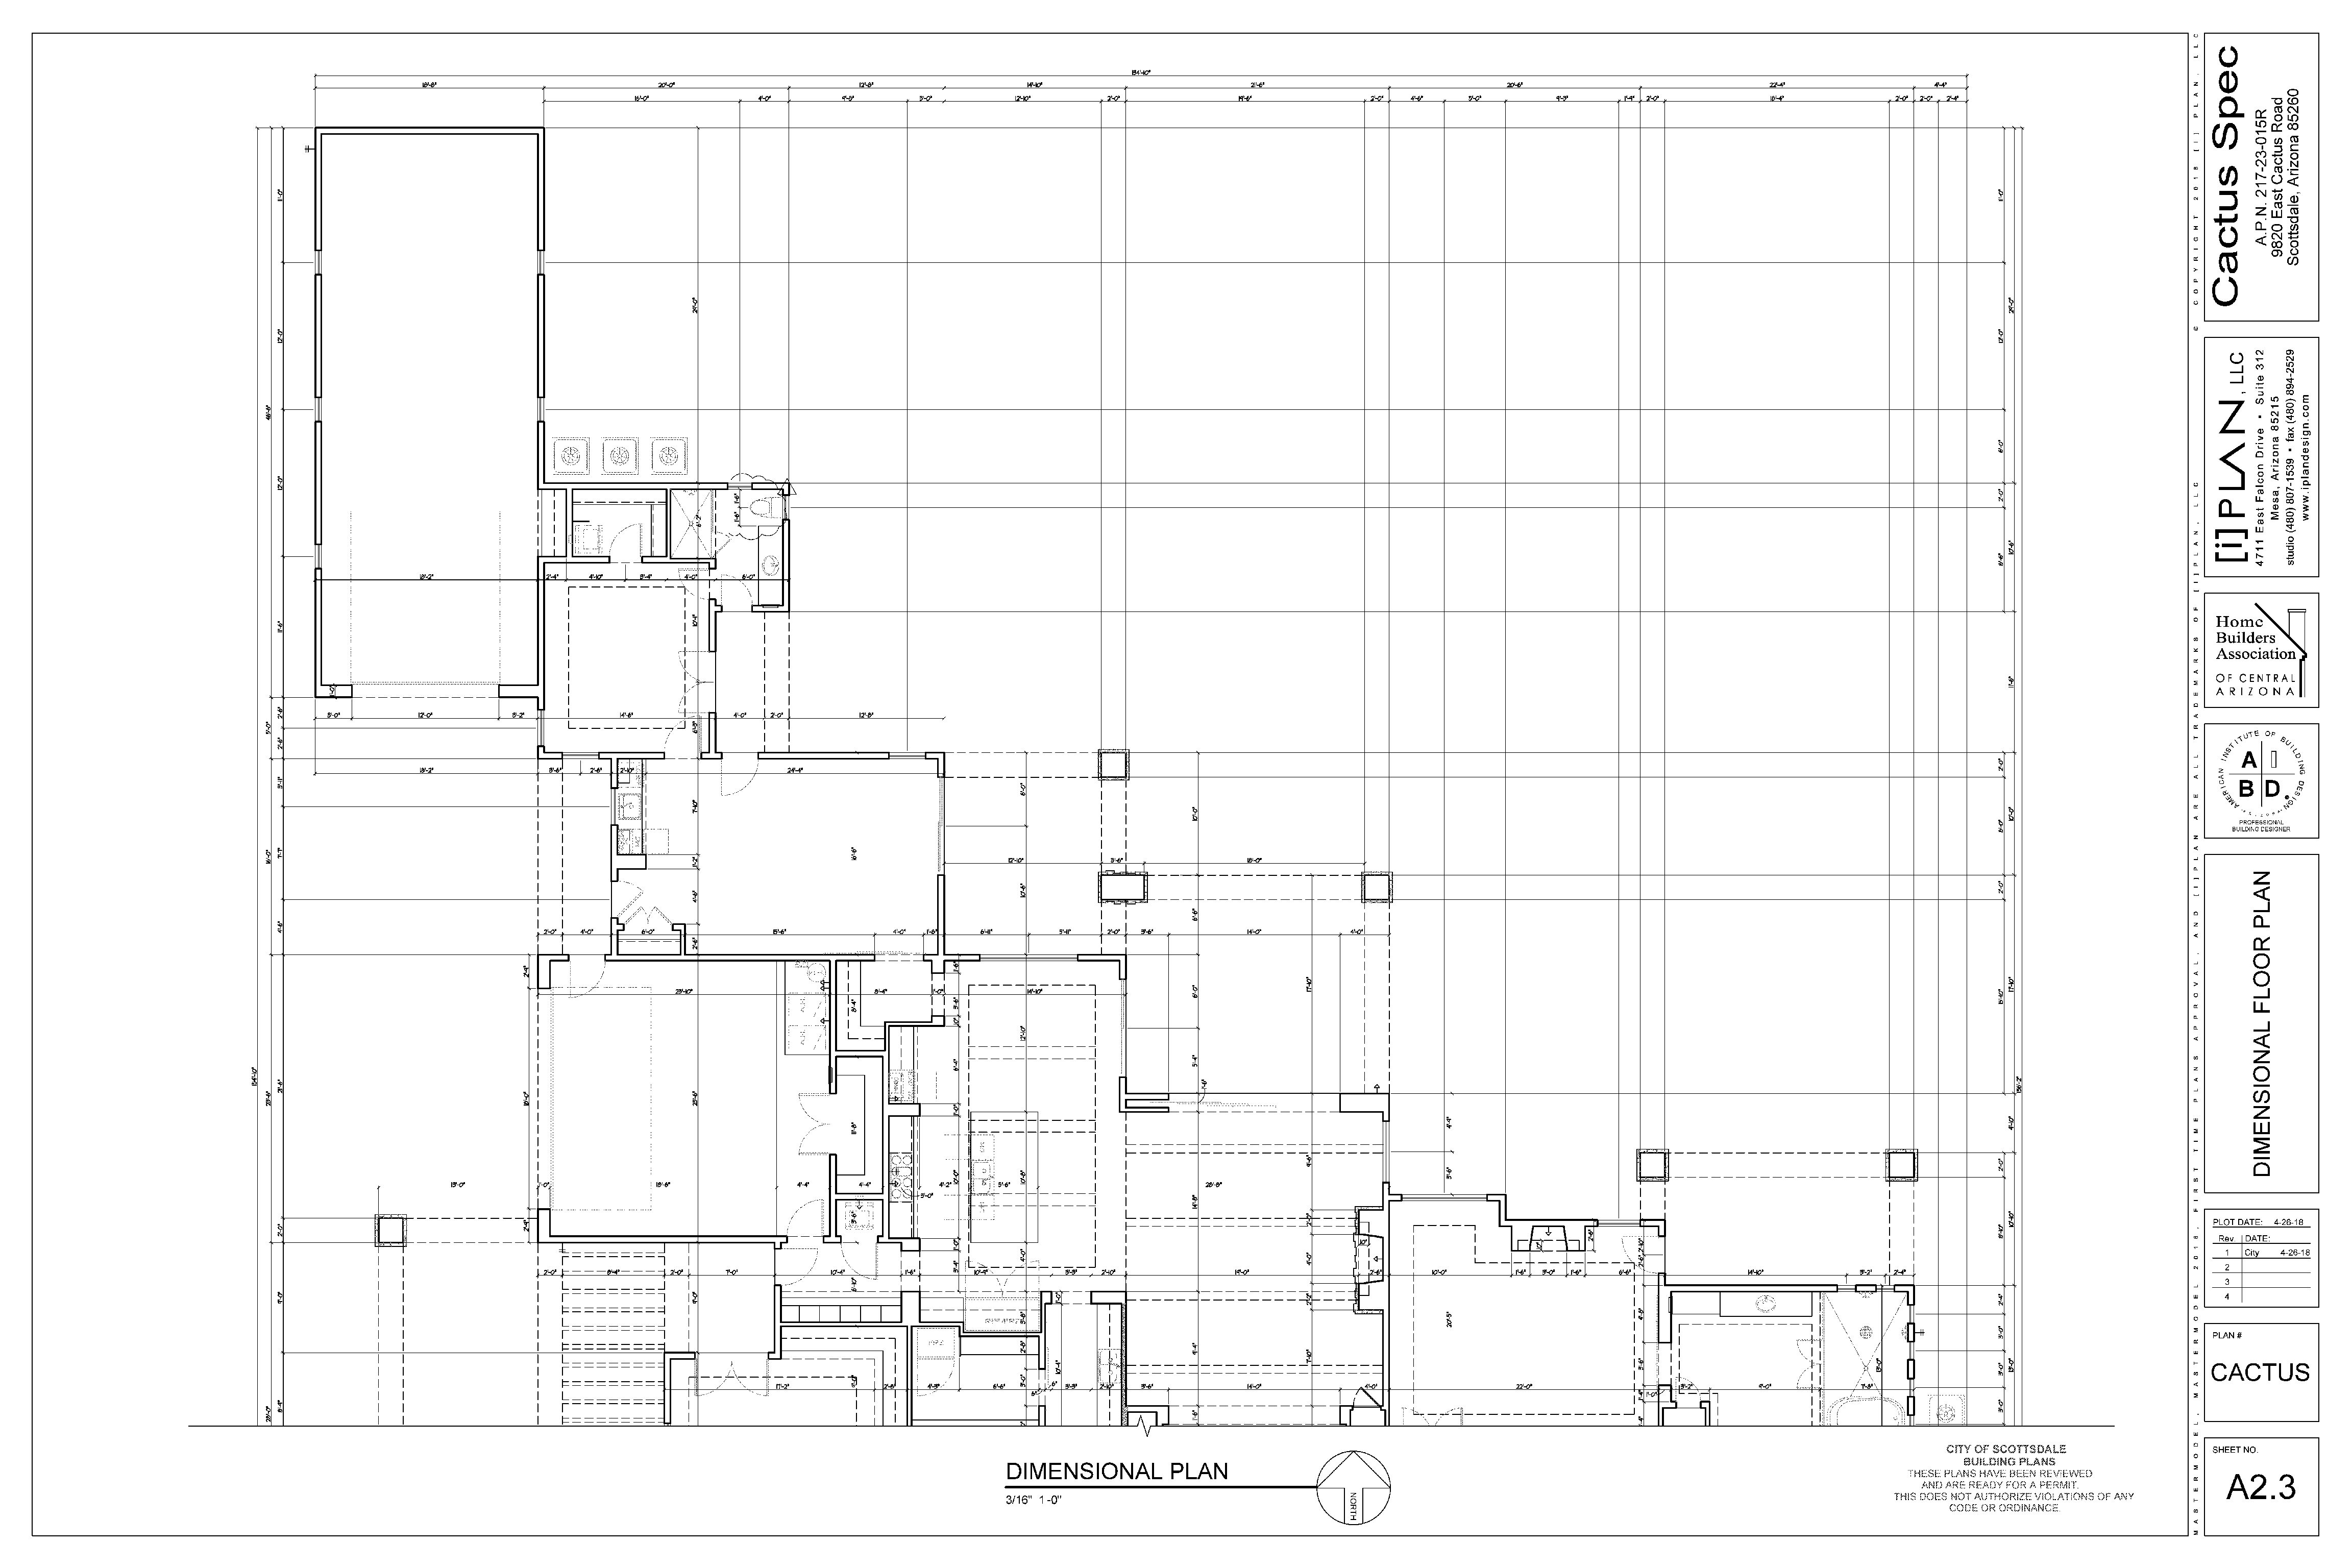 modern-french-farm 008-A2.3.Dimensional Floorplan